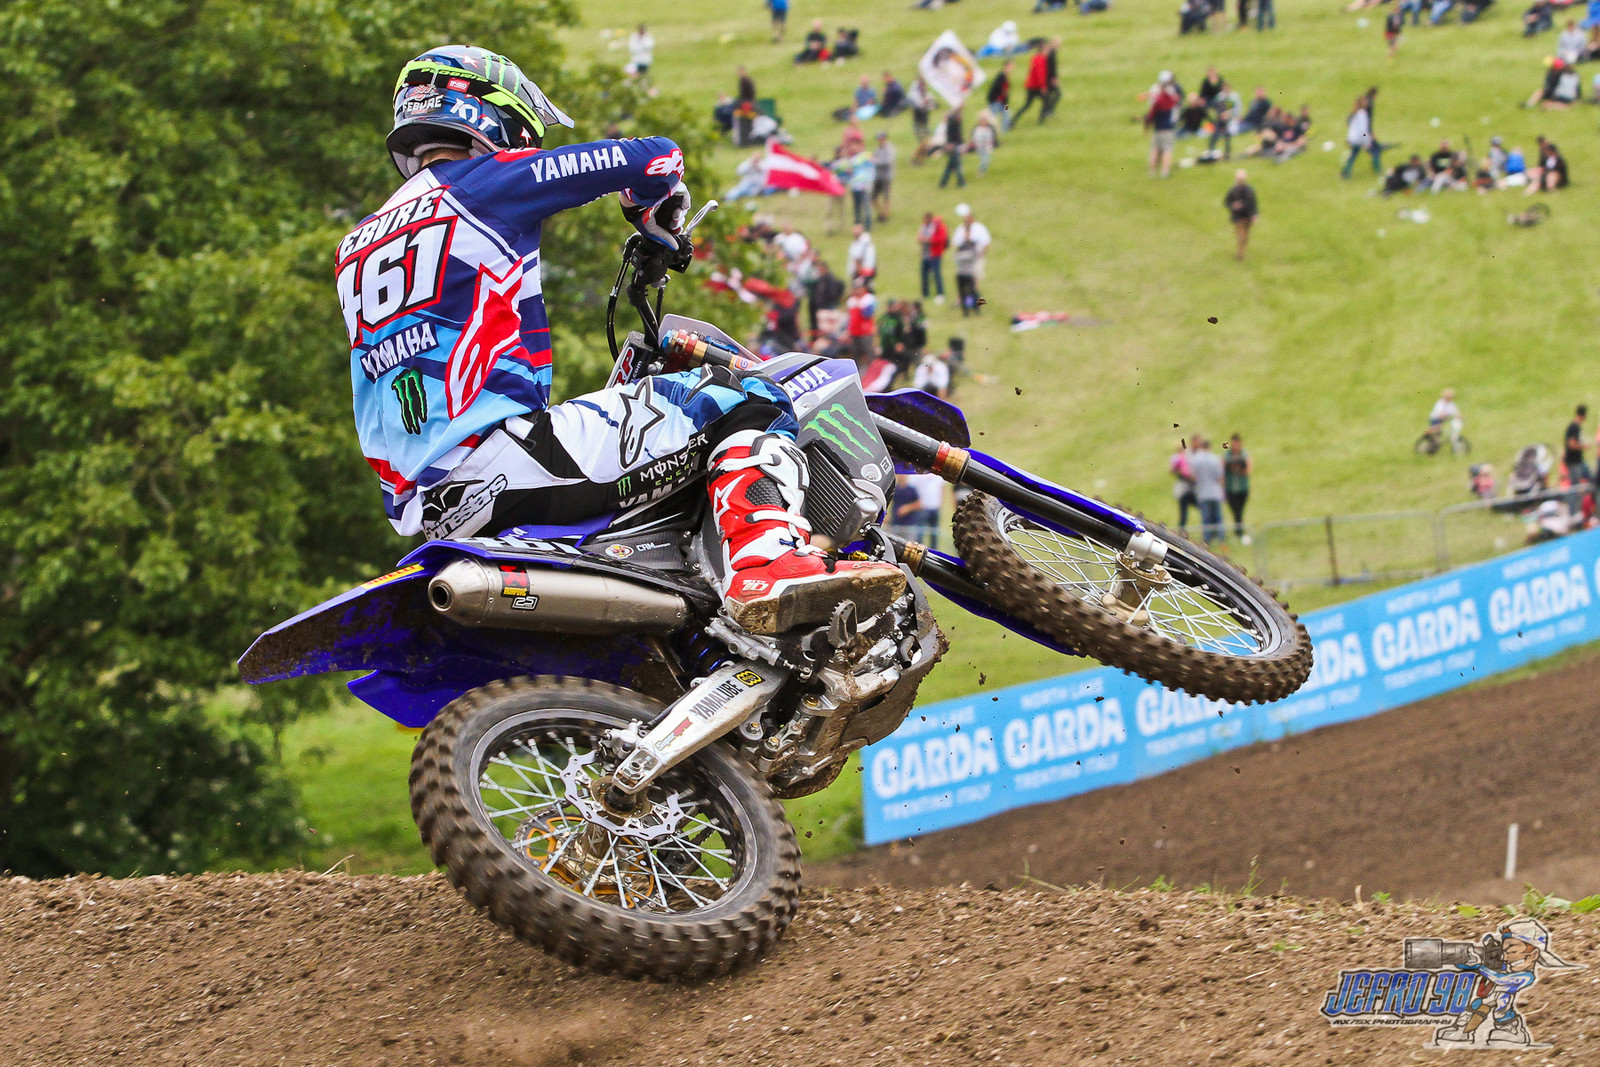 Romain Febvre - Photo Gallery: MXGP of Great Britain - Motocross Pictures - Vital MX